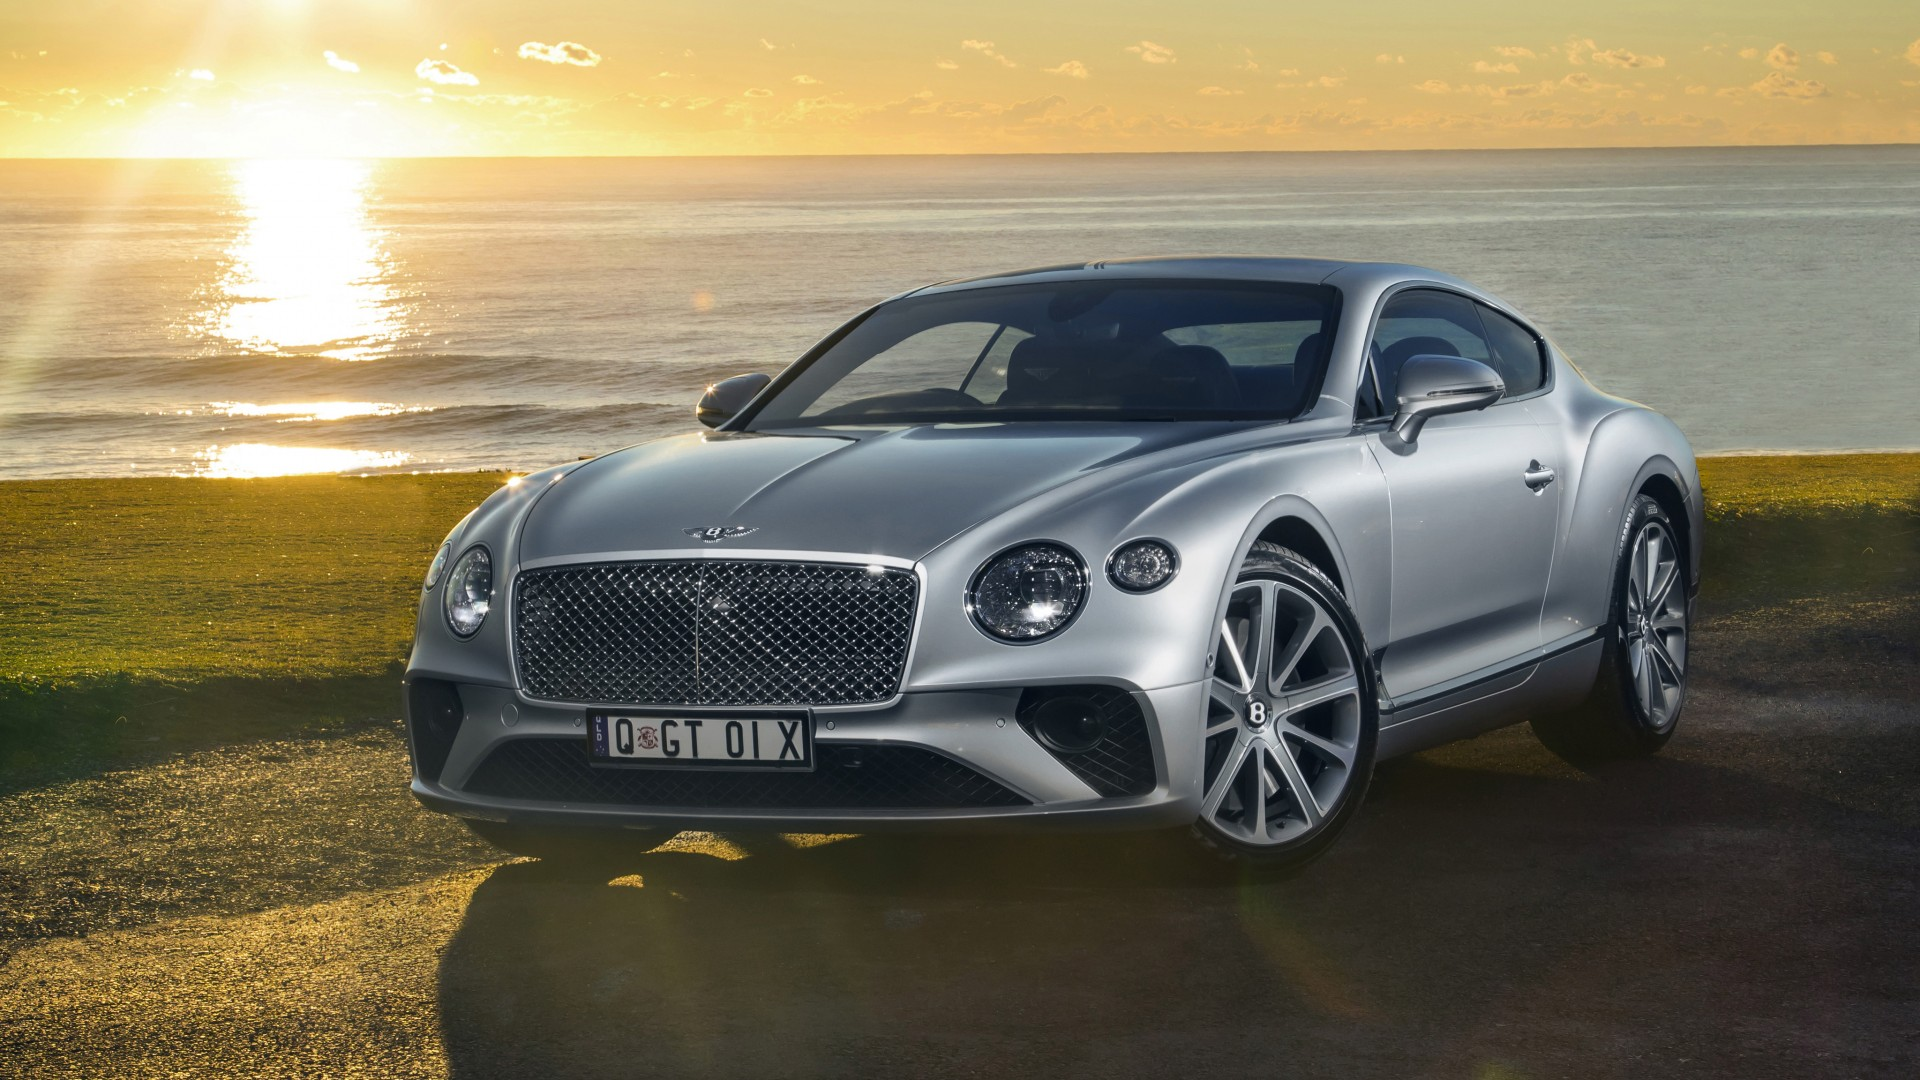 Bentley Continental GT 2018 4K Wallpaper | HD Car ...